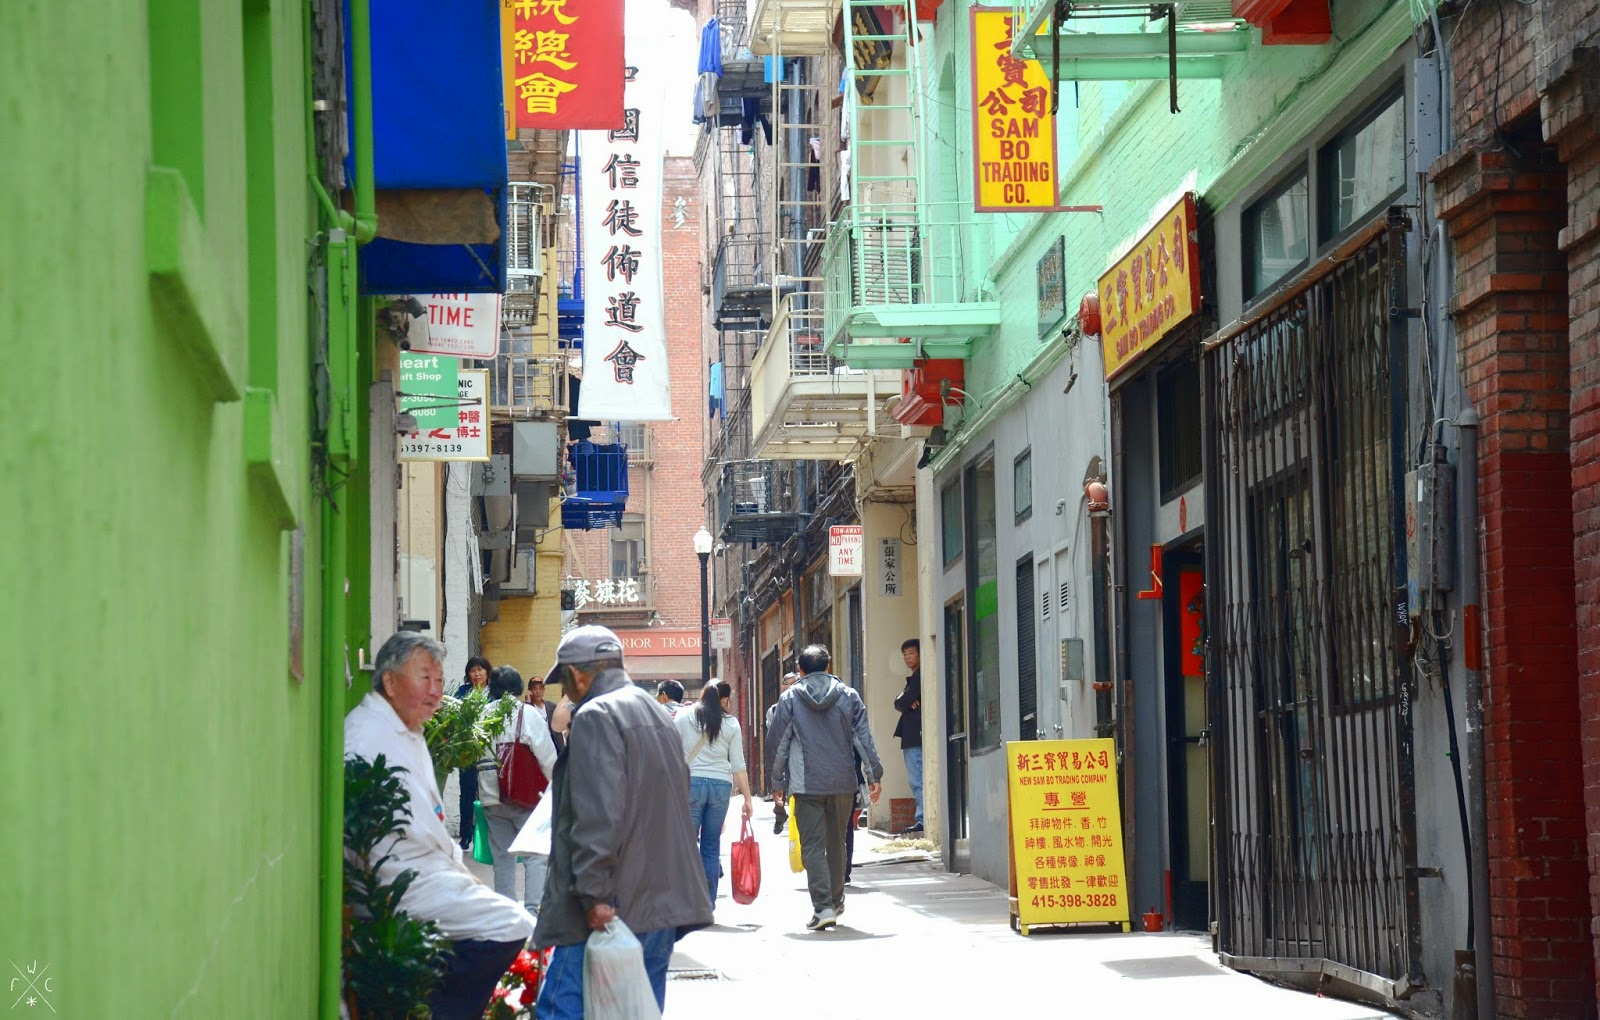 Chinatown, San Francisco, California, USA